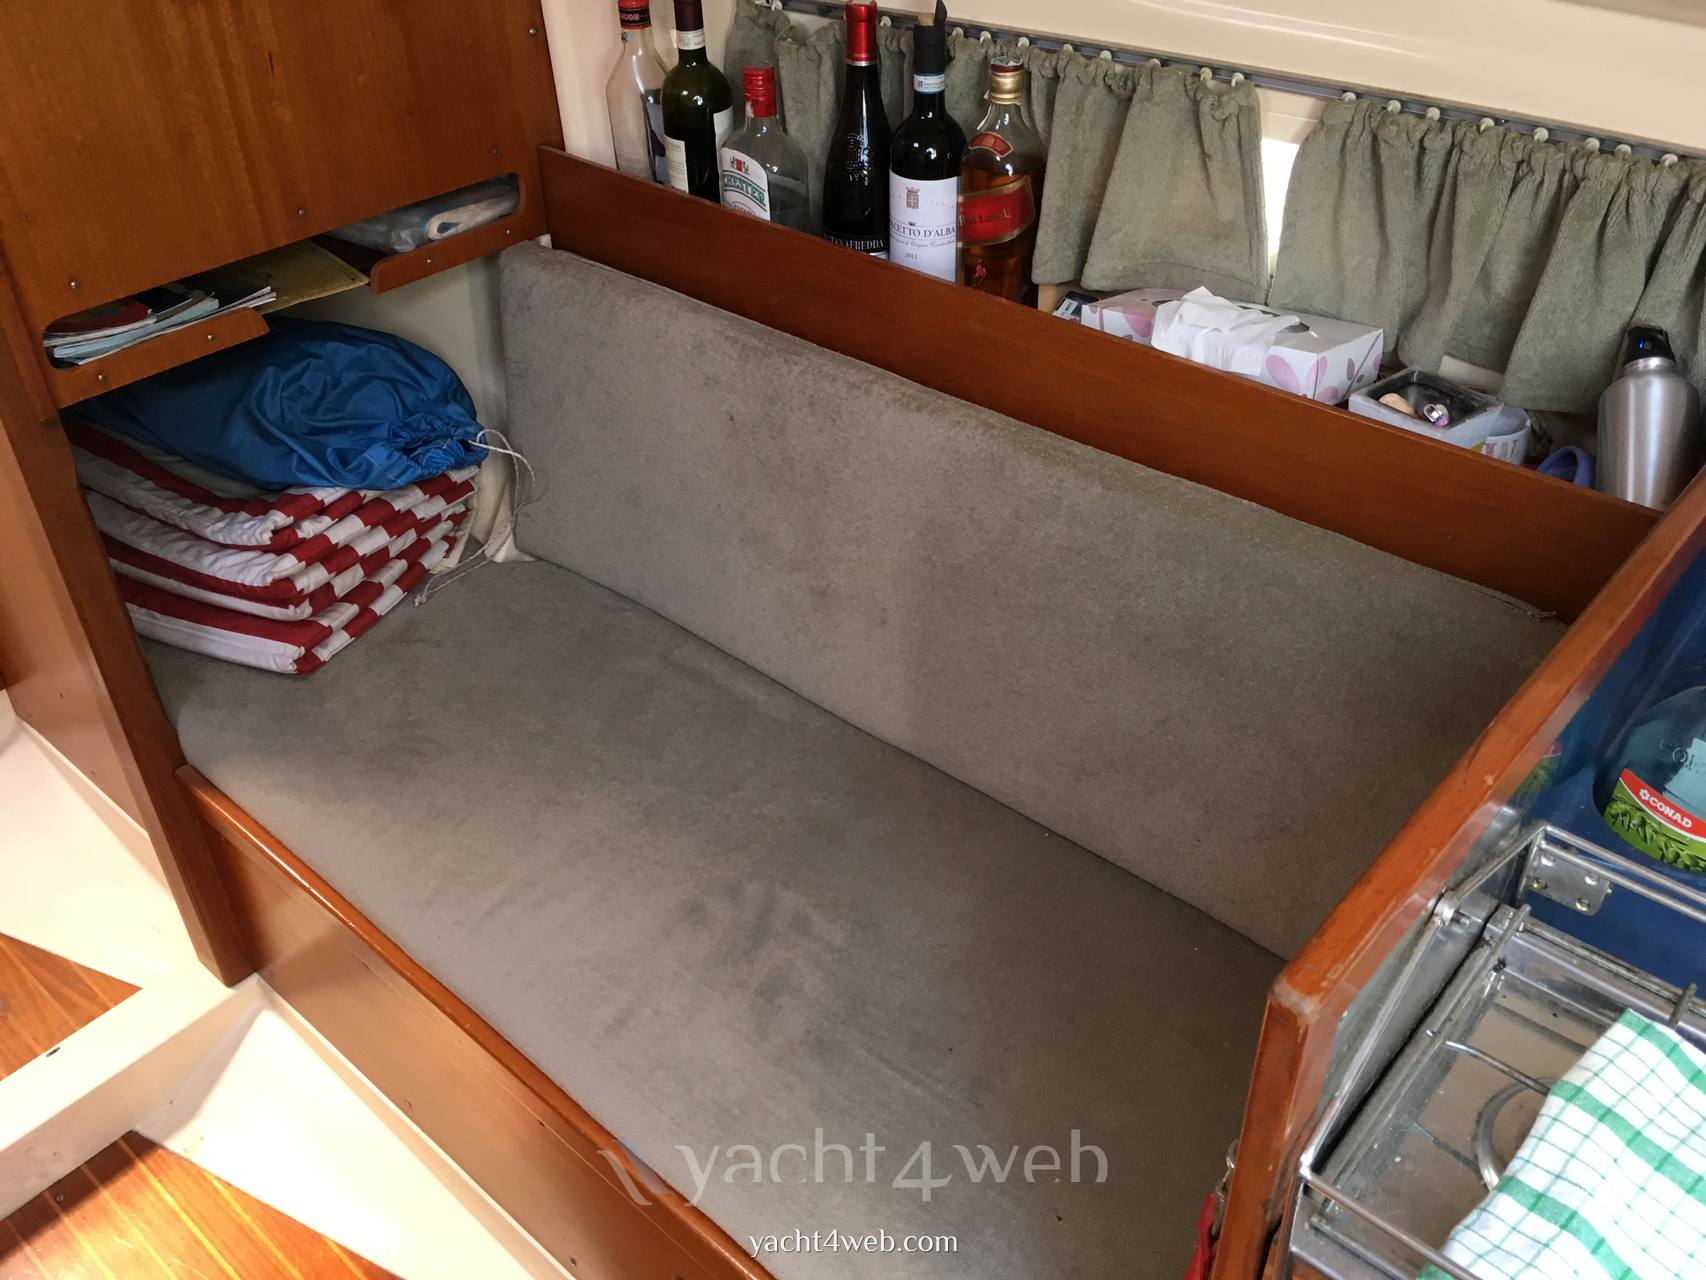 DUFOUR 27 Sailing boat used for sale